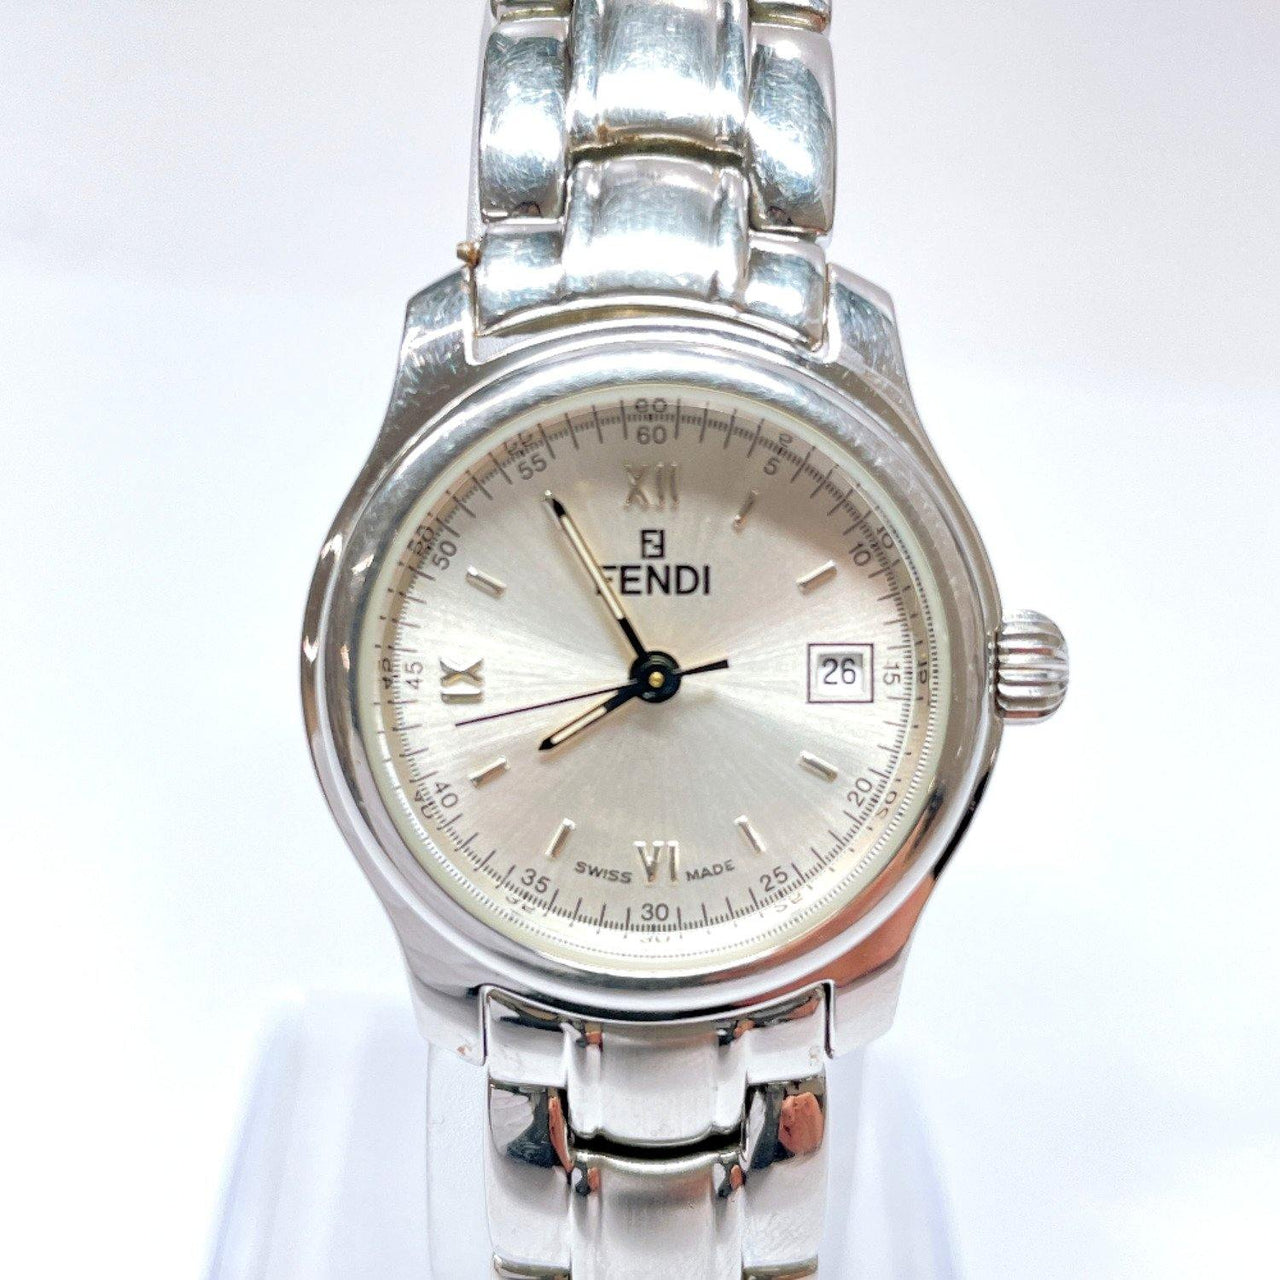 FENDI Watches 210L quartz Stainless Steel Silver Women Used - JP-BRANDS.com